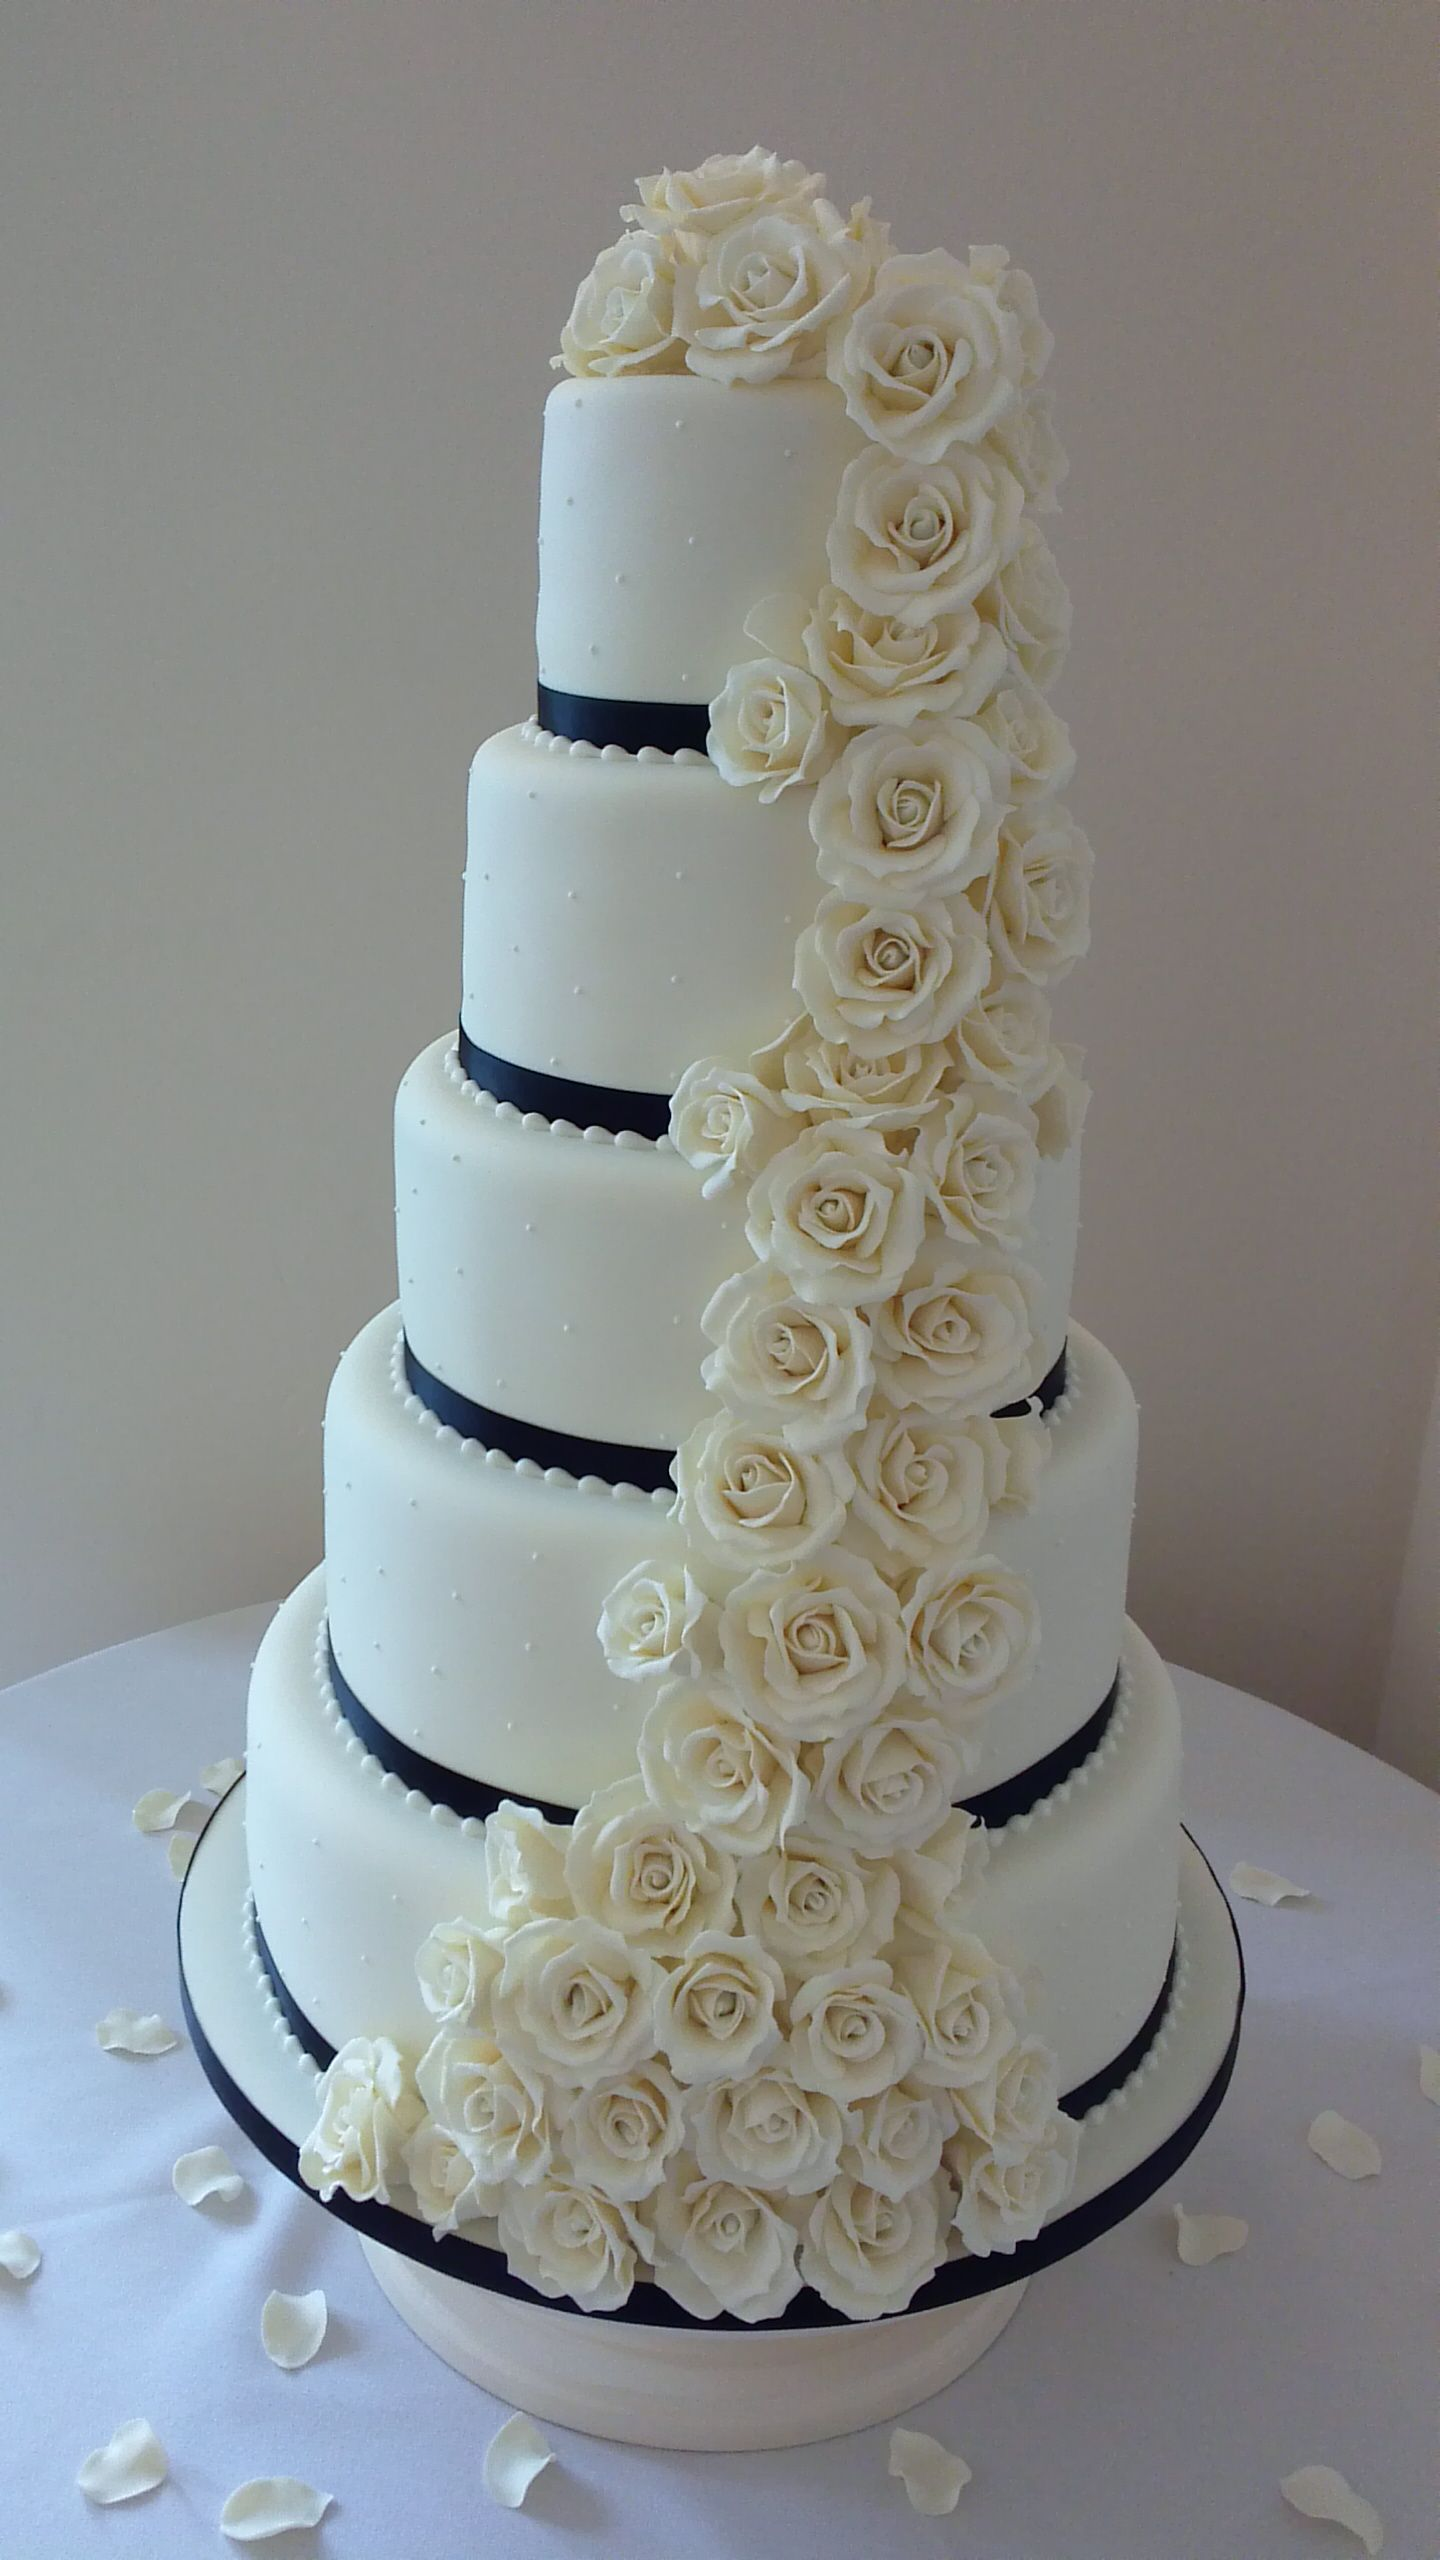 Another beautiful cake from sandra monger cake designs which